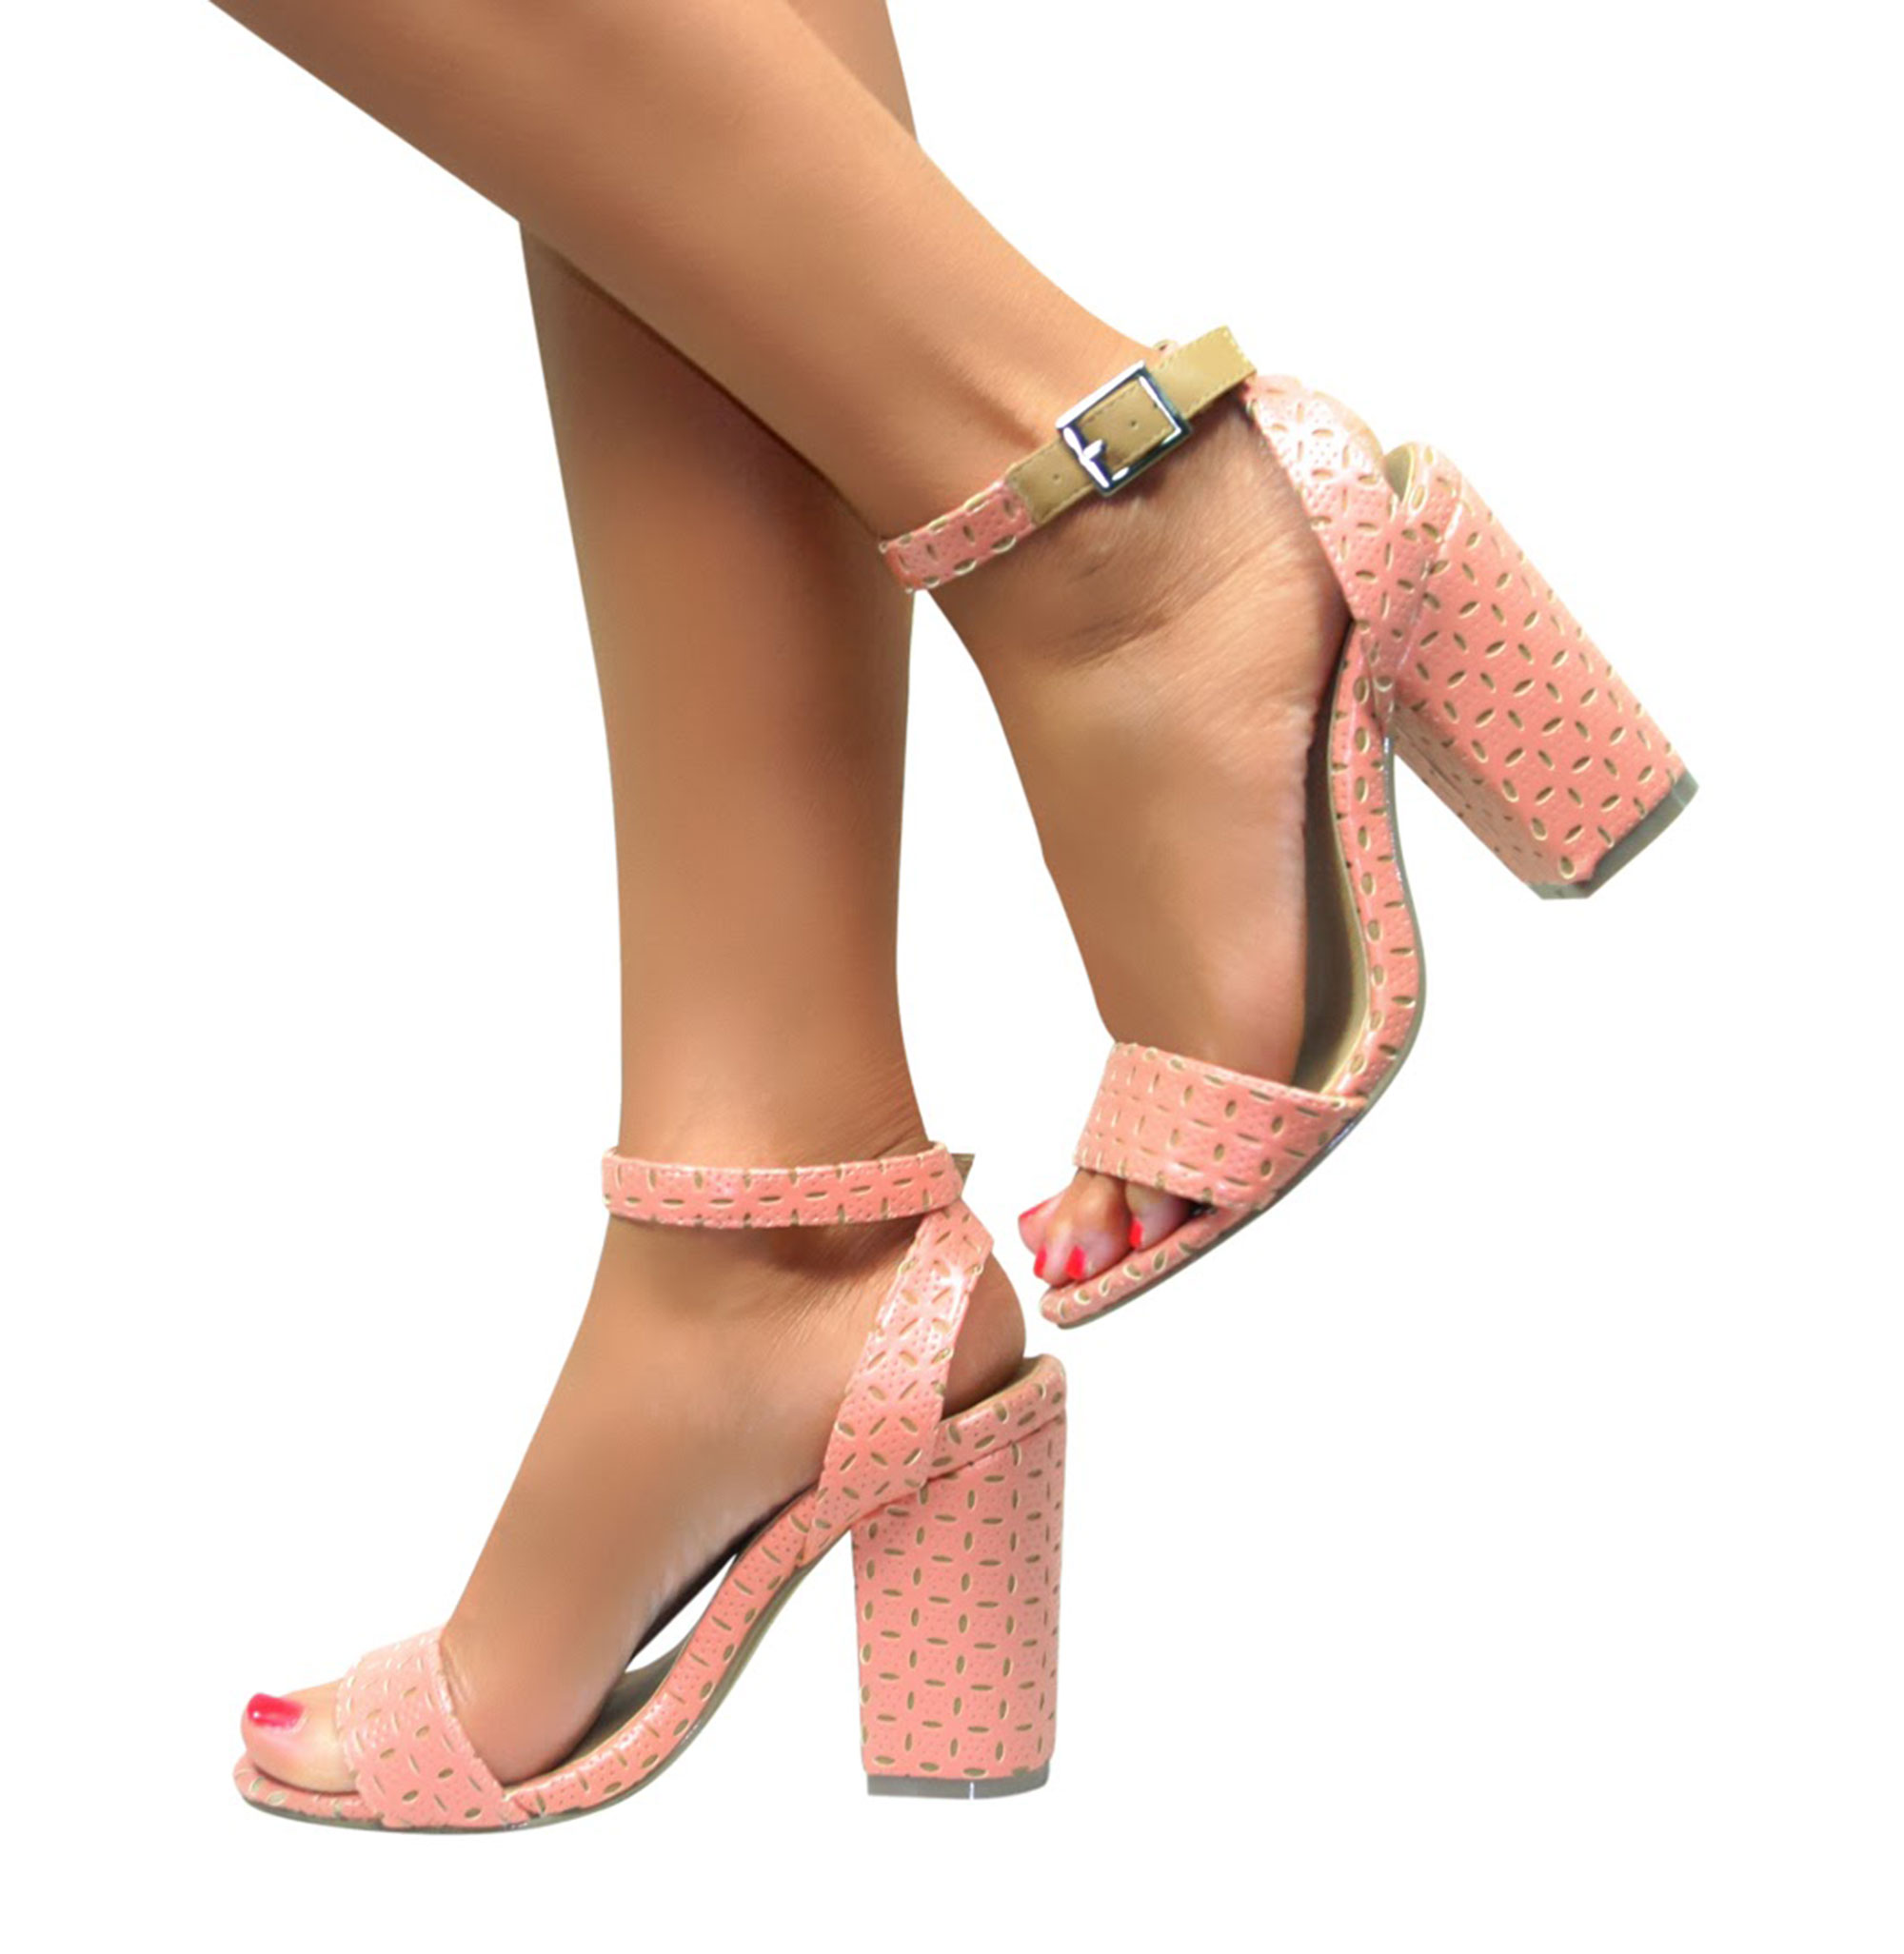 Shop for block heel sandals at 10mins.ml Visit 10mins.ml to find clothing, accessories, shoes, cosmetics & more. The Style of Your Life.